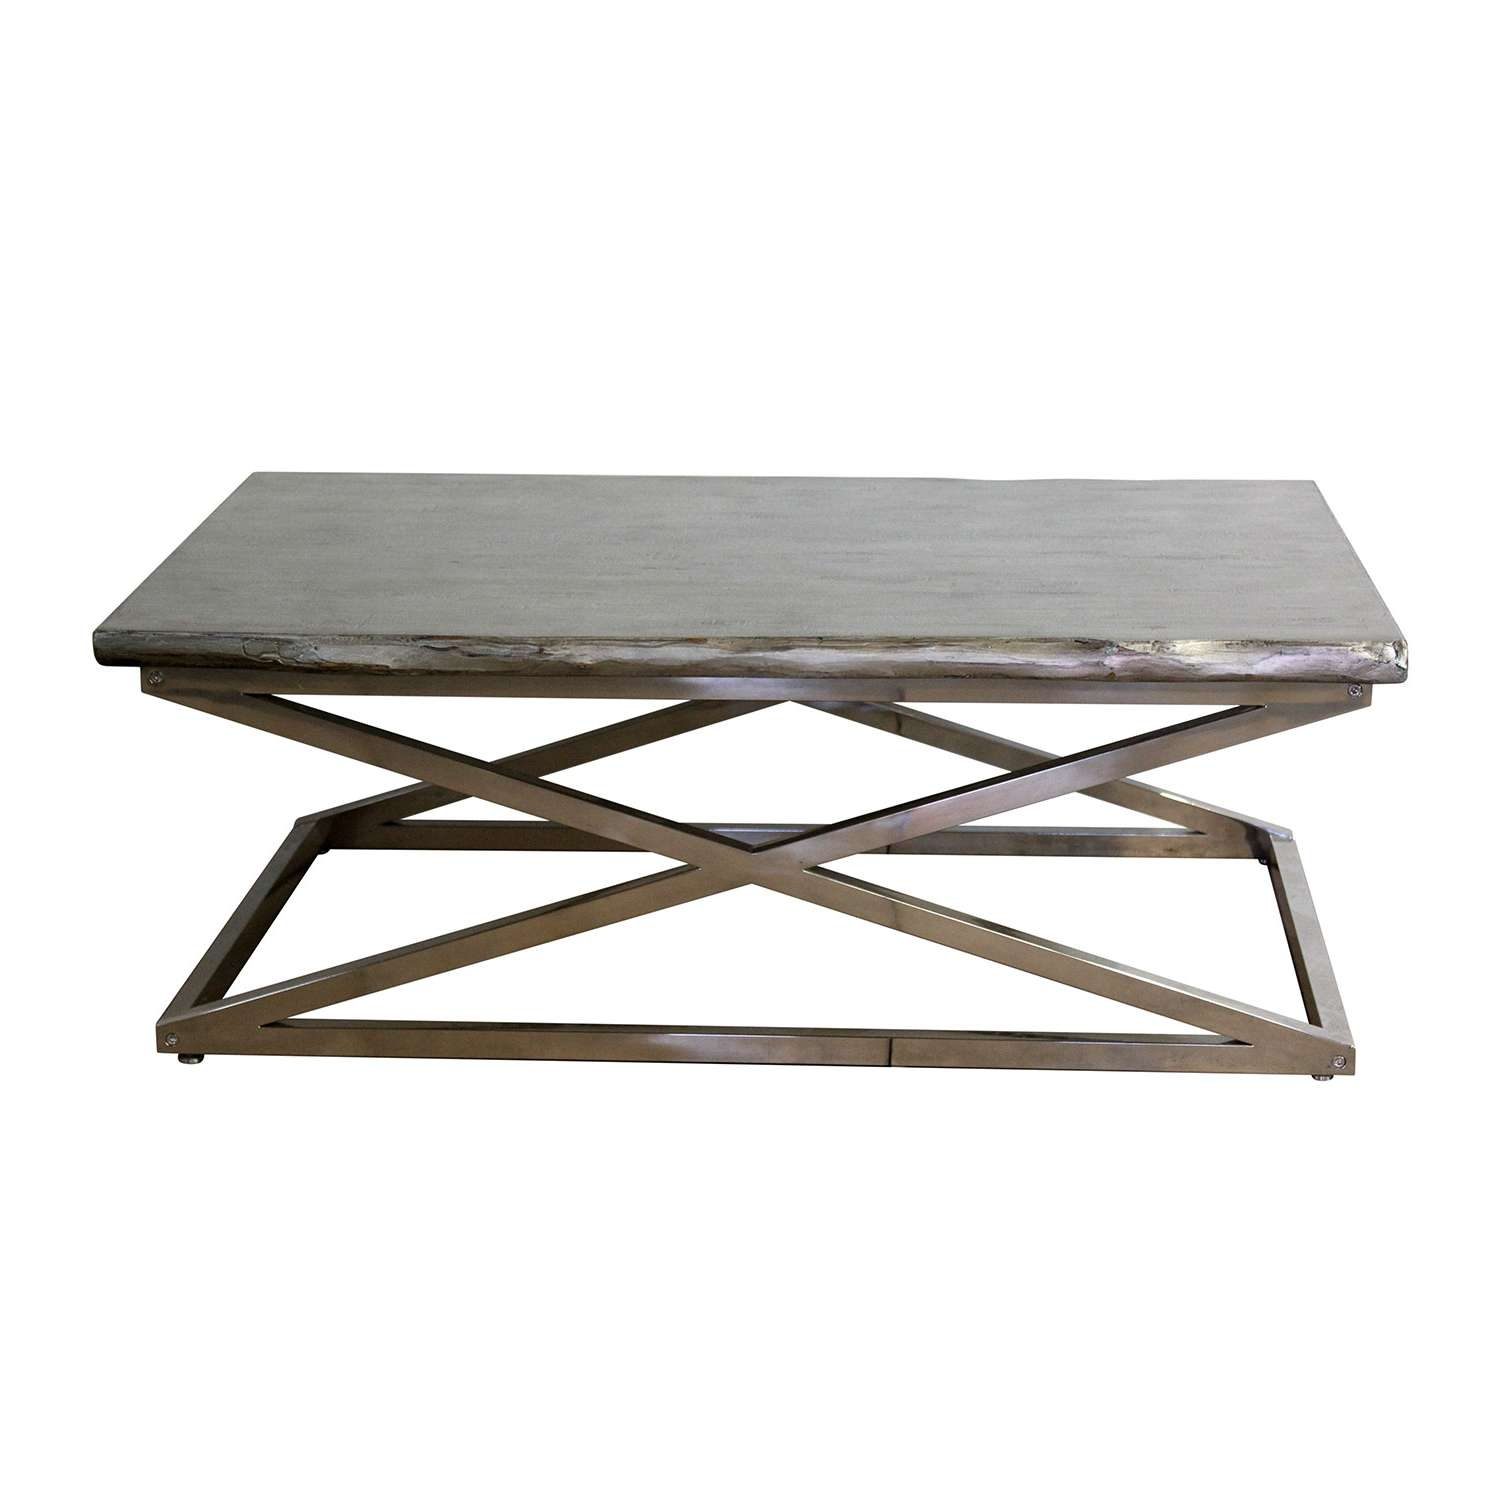 Glass And Chrome Coffee Table Ideas Table / Thippo Inside Most Recent Wood Chrome Coffee Tables (Gallery 3 of 20)